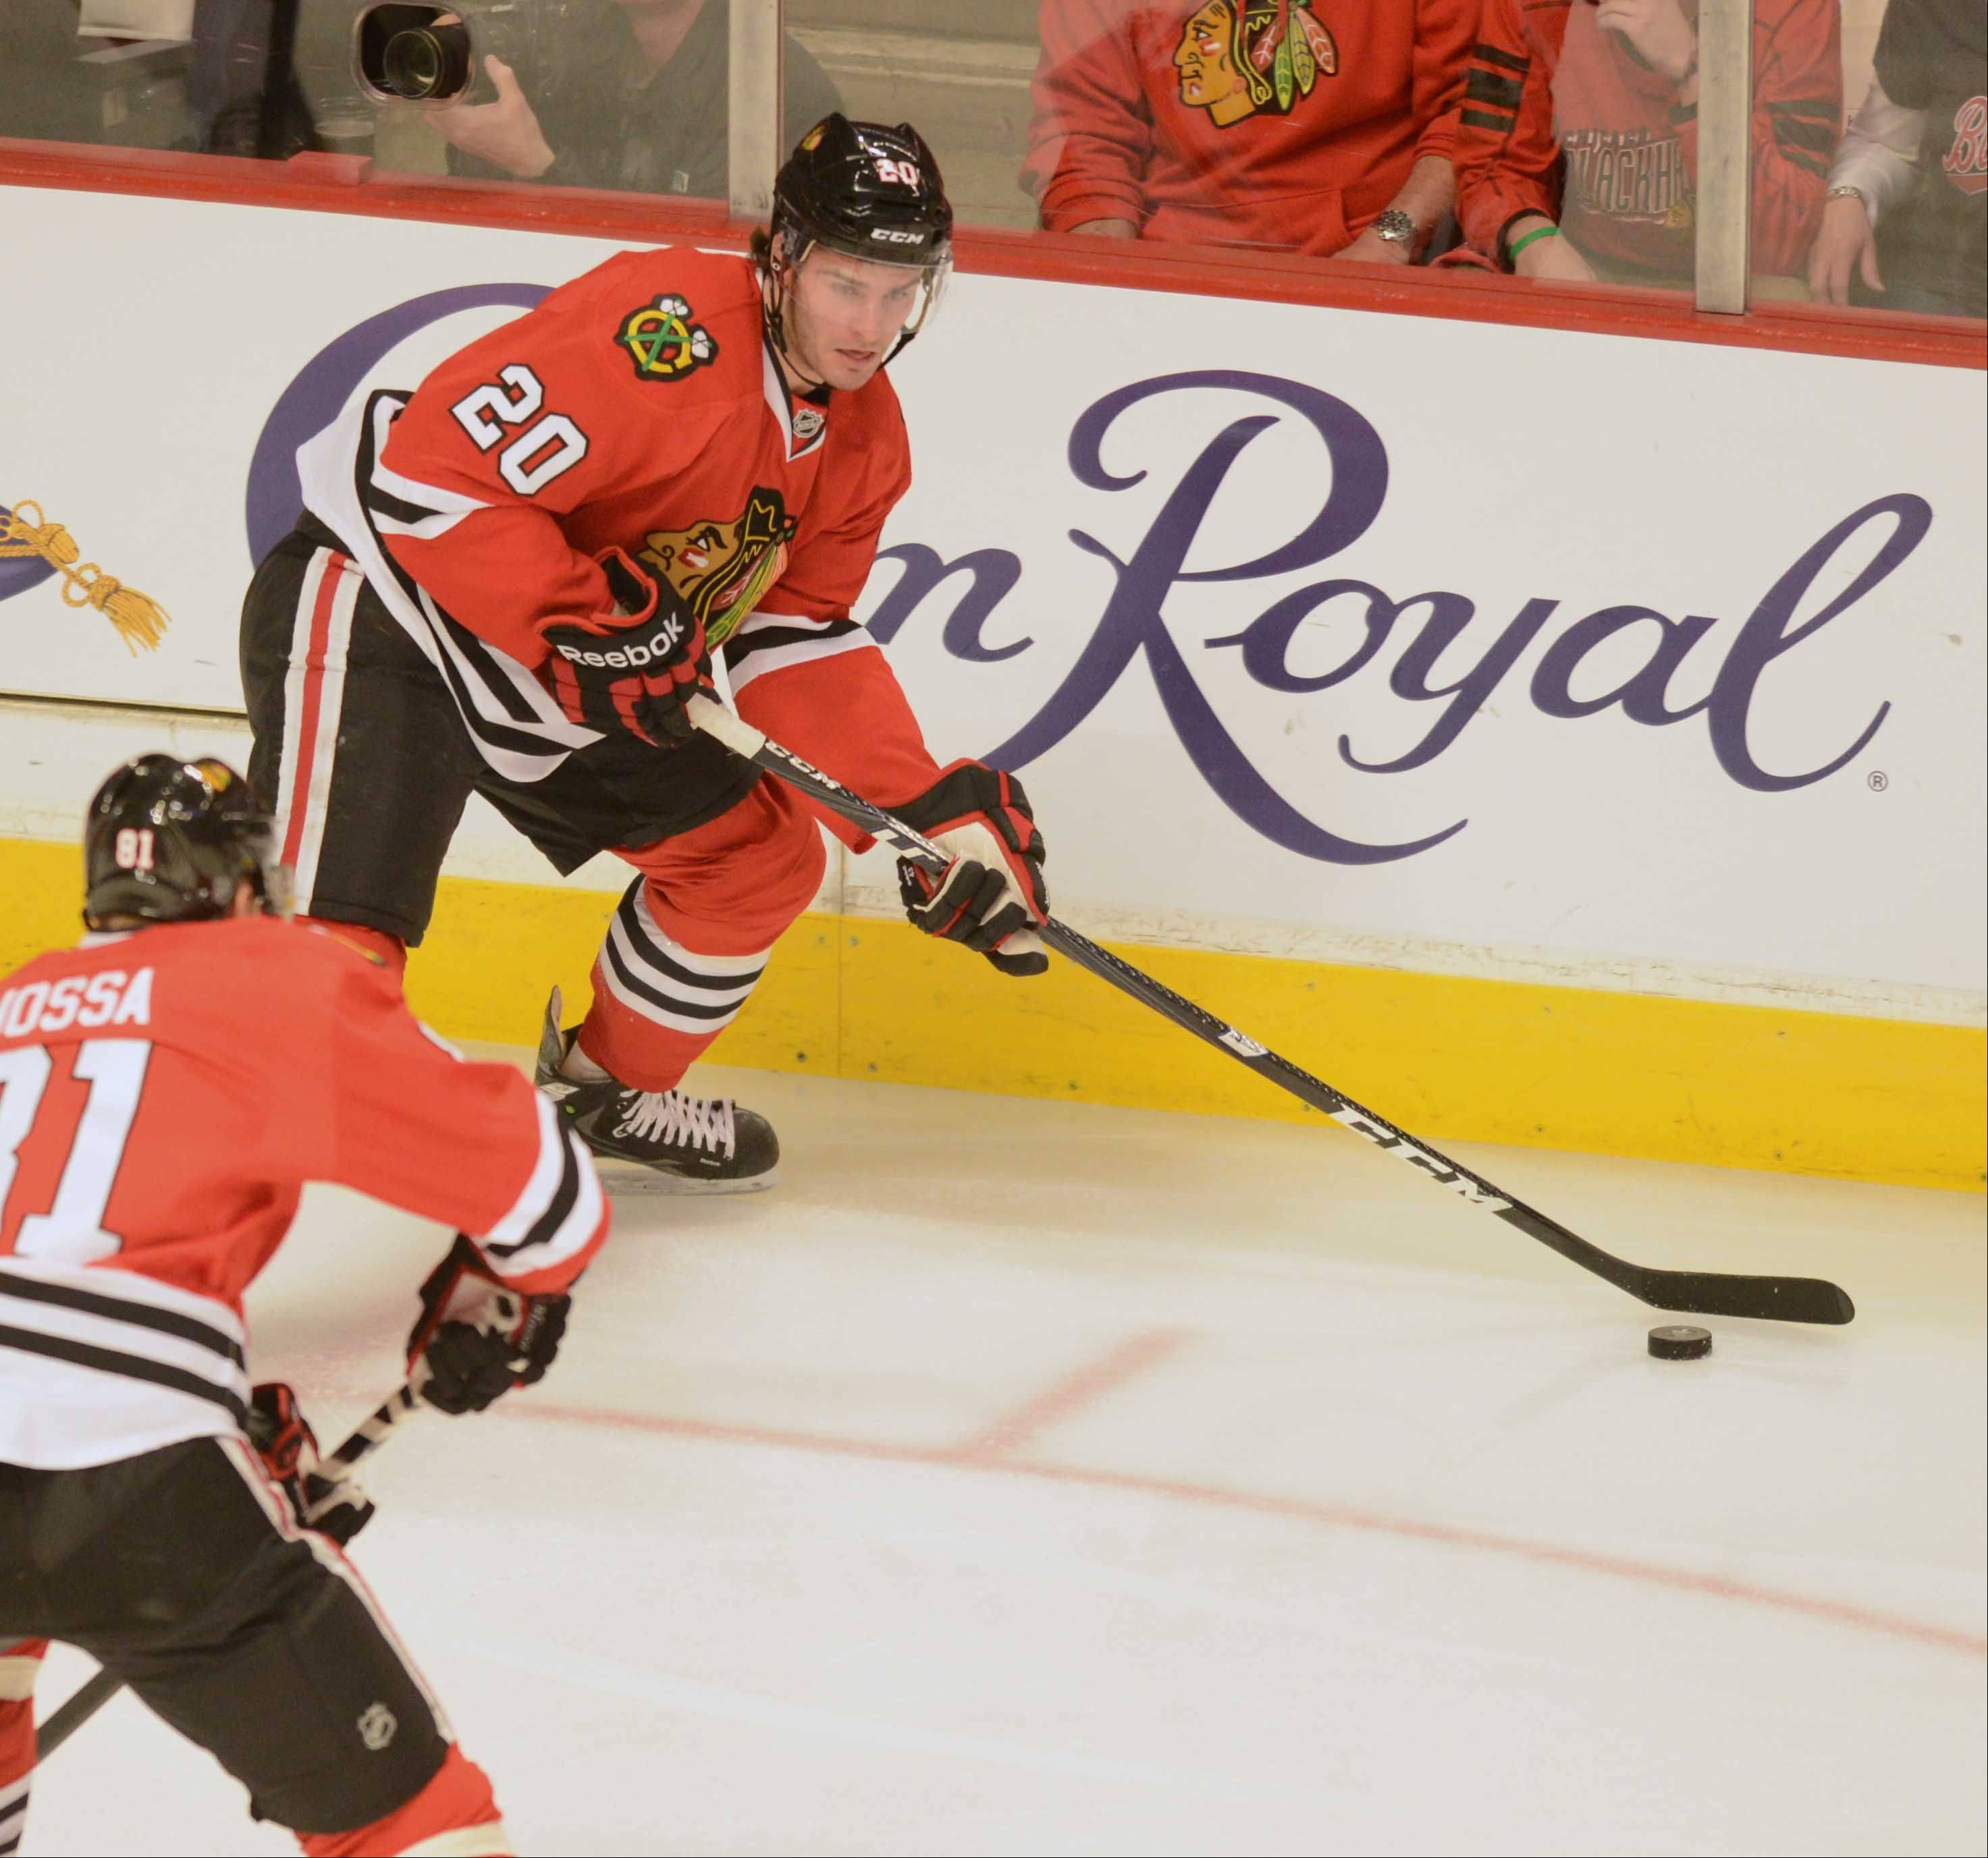 The Western Conference first-round NHL playoff series between the Chicago Blackhawks and the Minnesota Wild on Friday night at the United Center in Chicago.